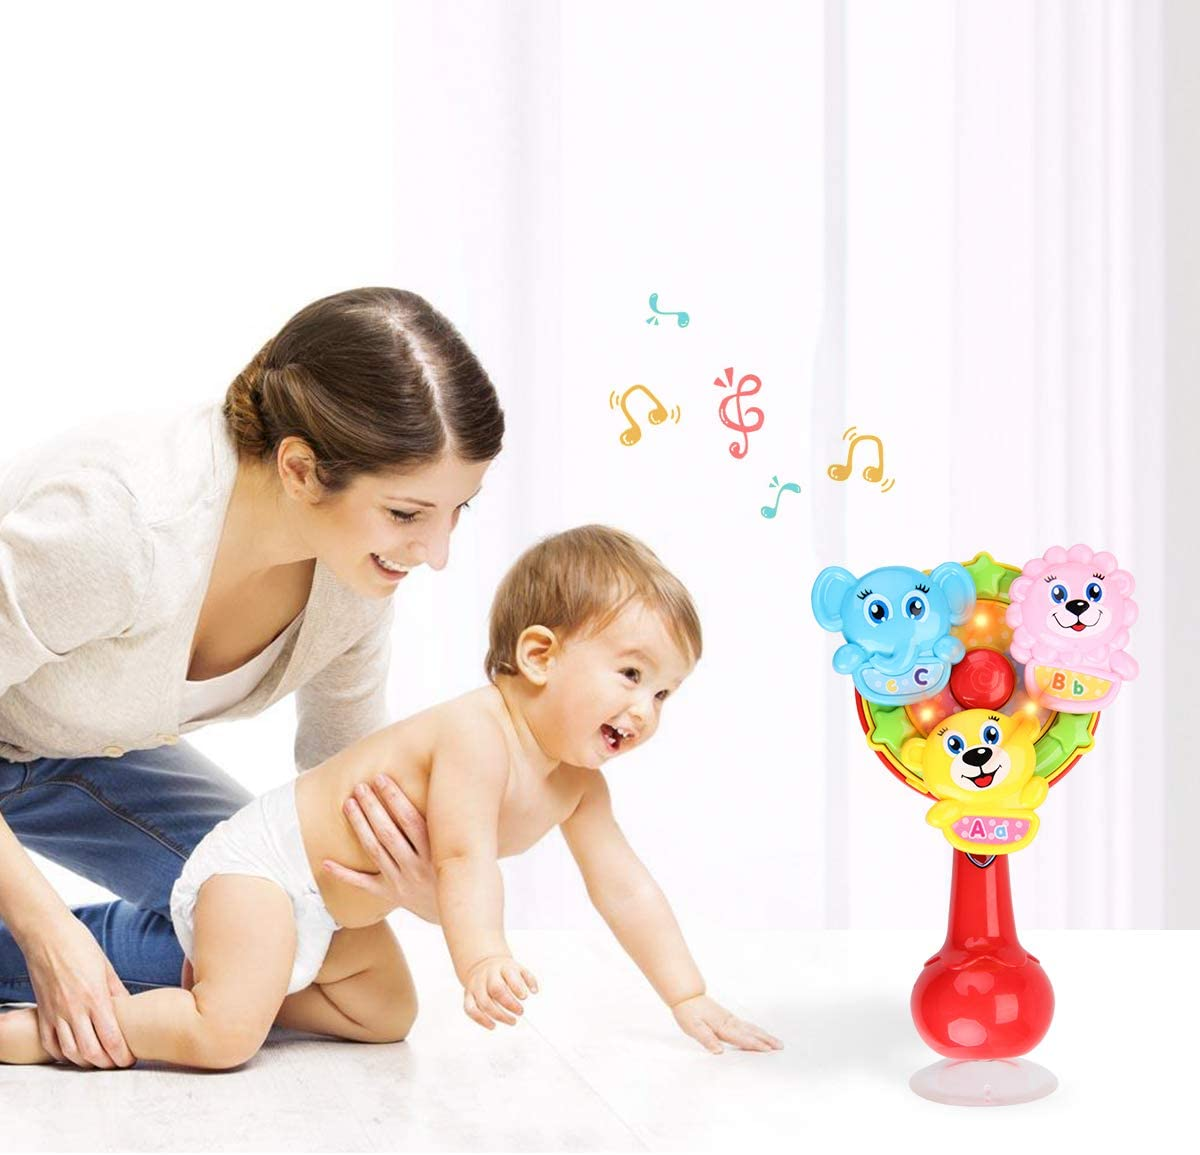 Music for Ages 6 Months and Up Toddlers for Early Learning. FS Spin Wheel Baby Rattle Toy Spinning Activity High Chair Toy with Light